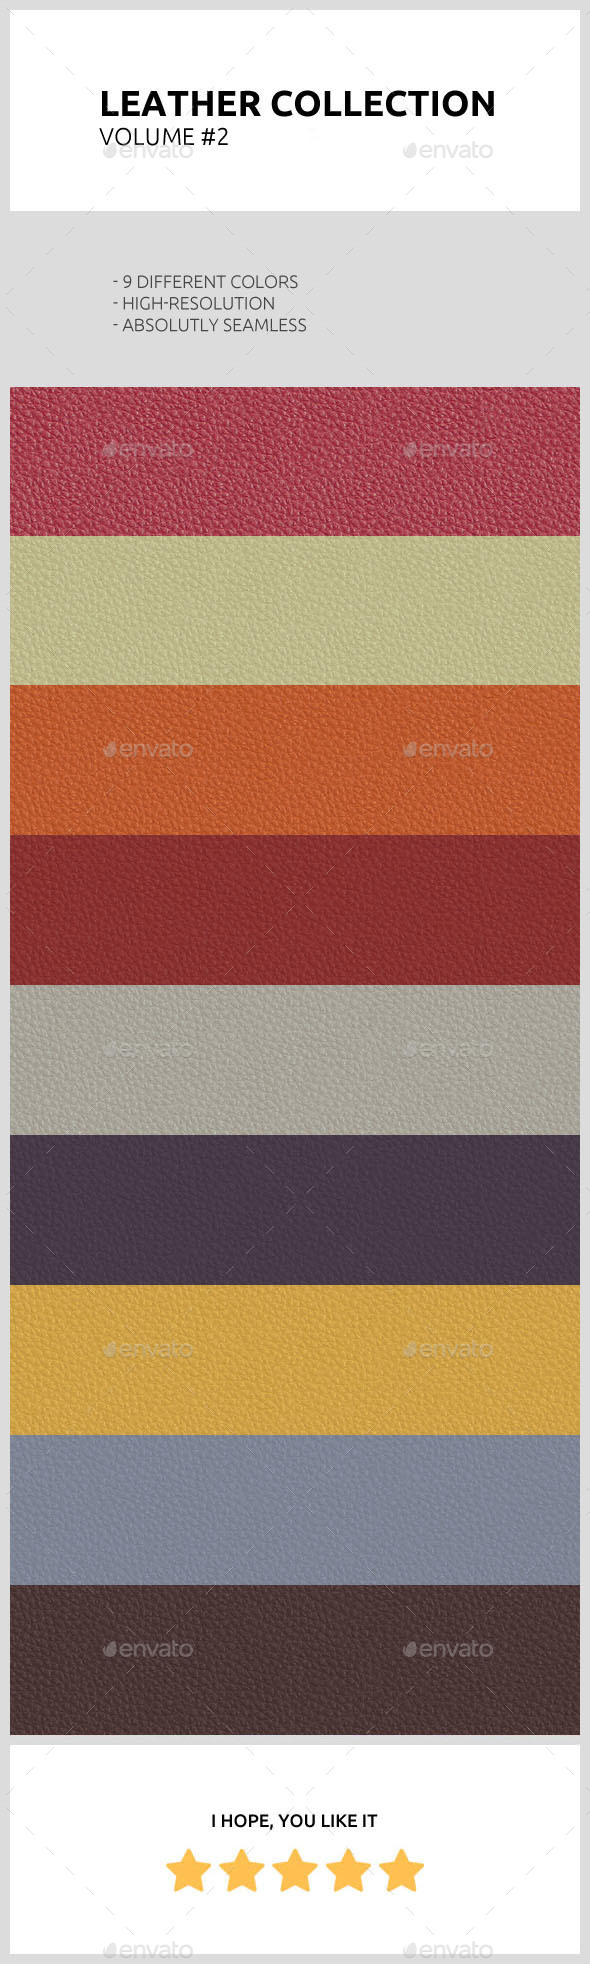 Leather Collection: Volume #2 - Fabric Textures